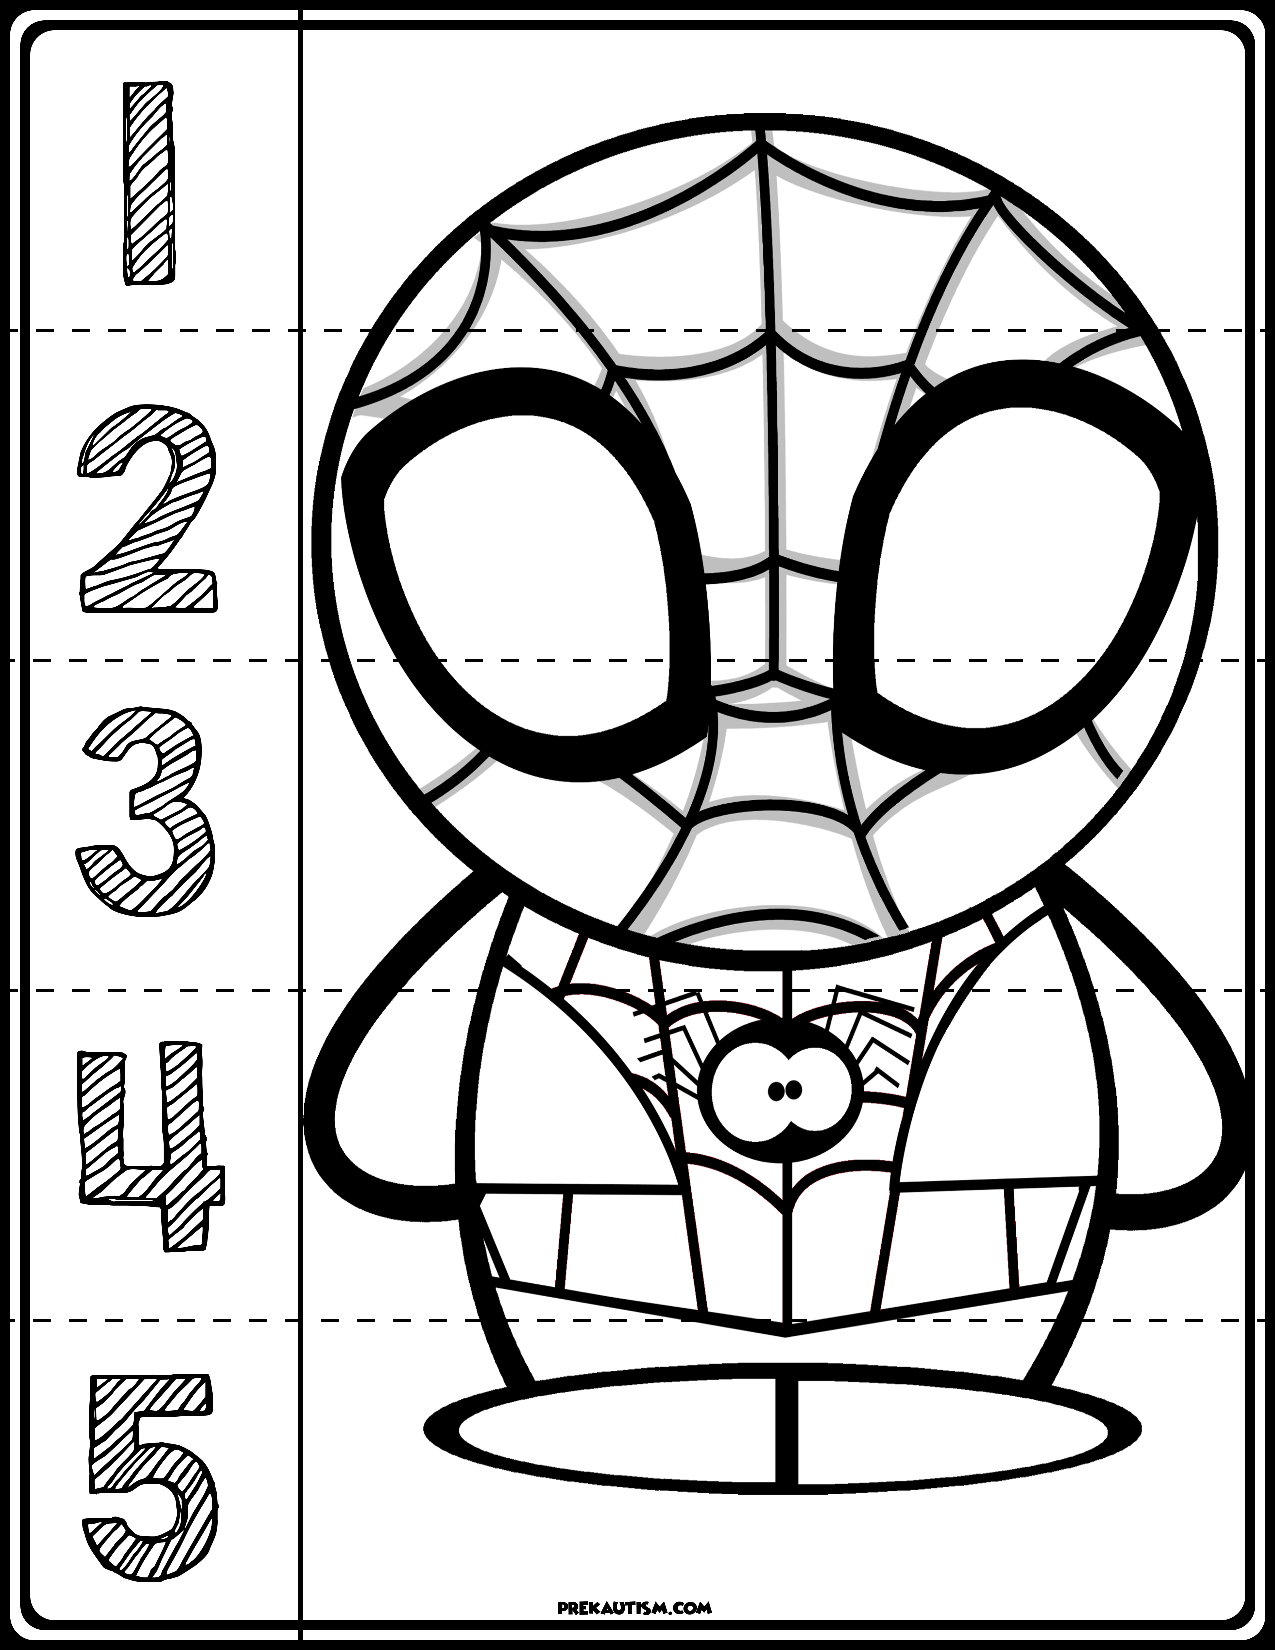 Spider Man 1 5 Counting Puzzle